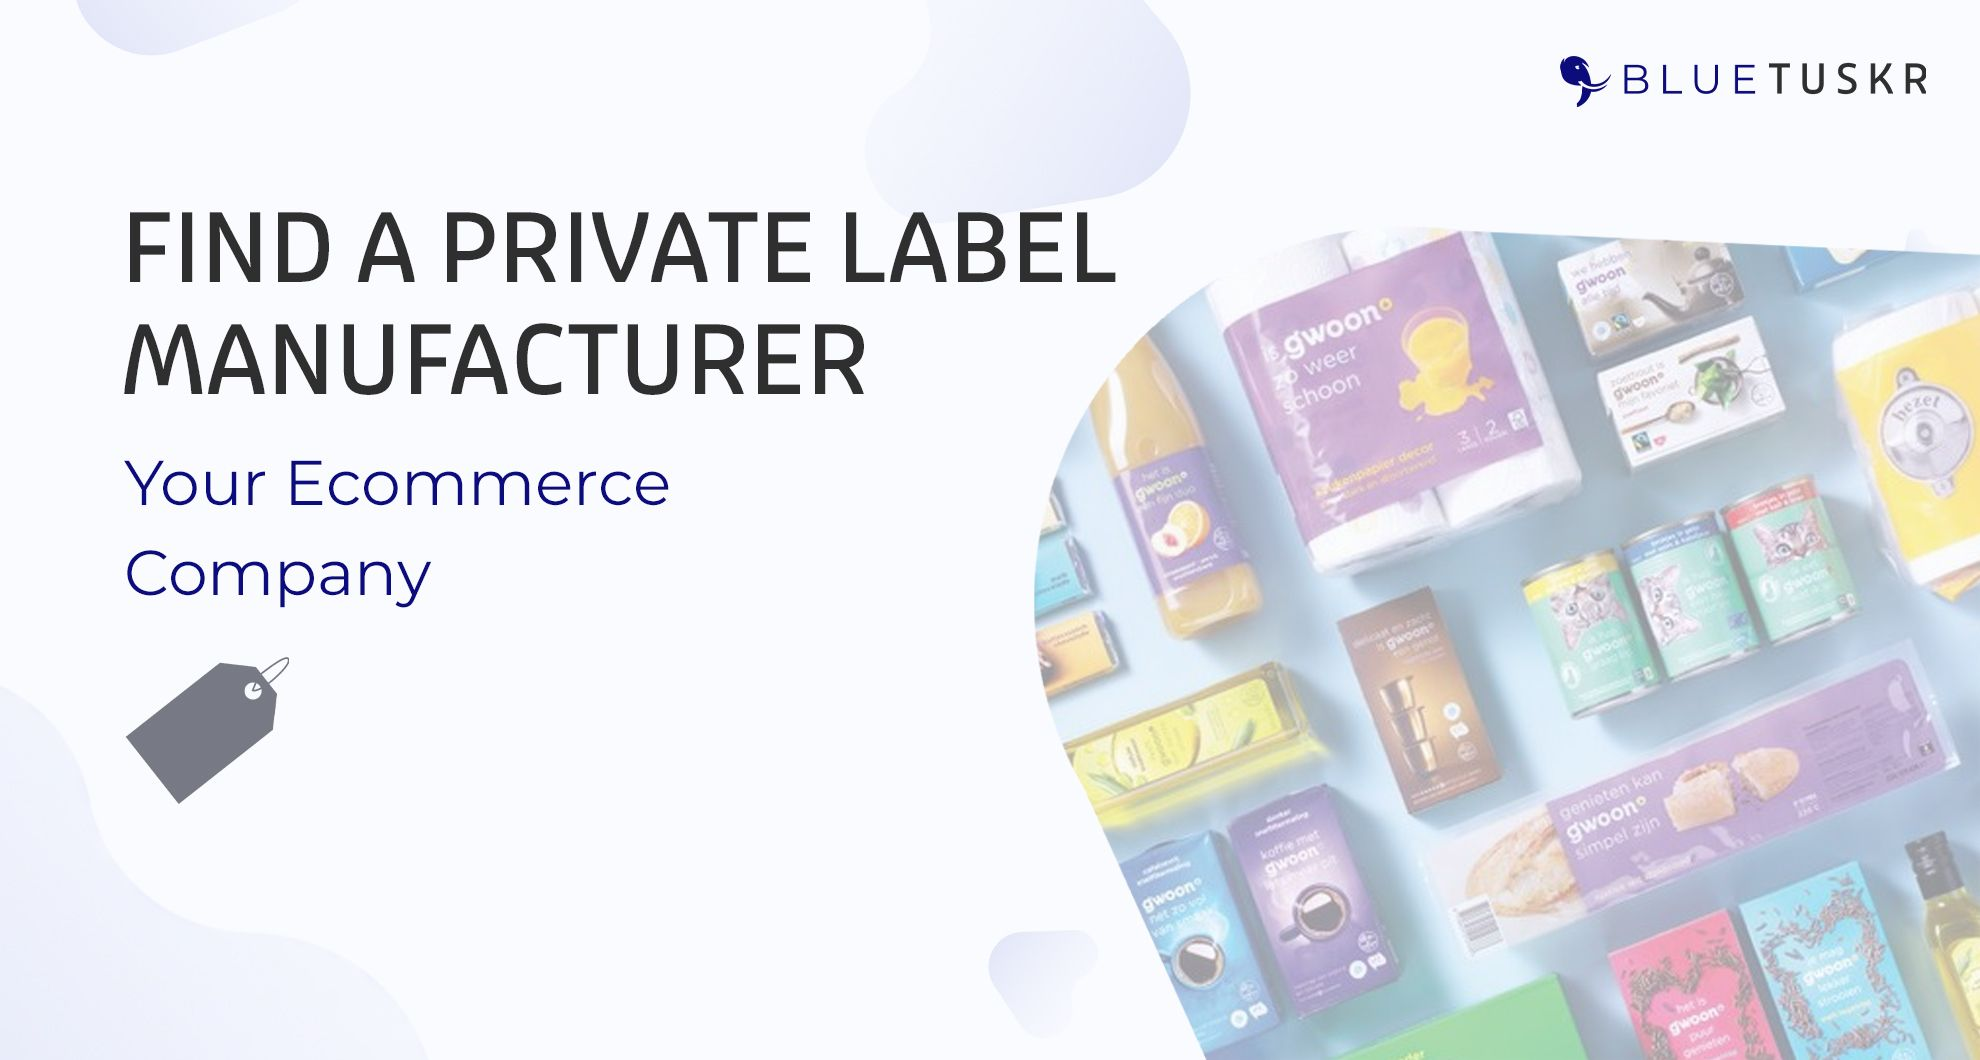 How to Find a Private Label Manufacturer for Your Ecommerce Company